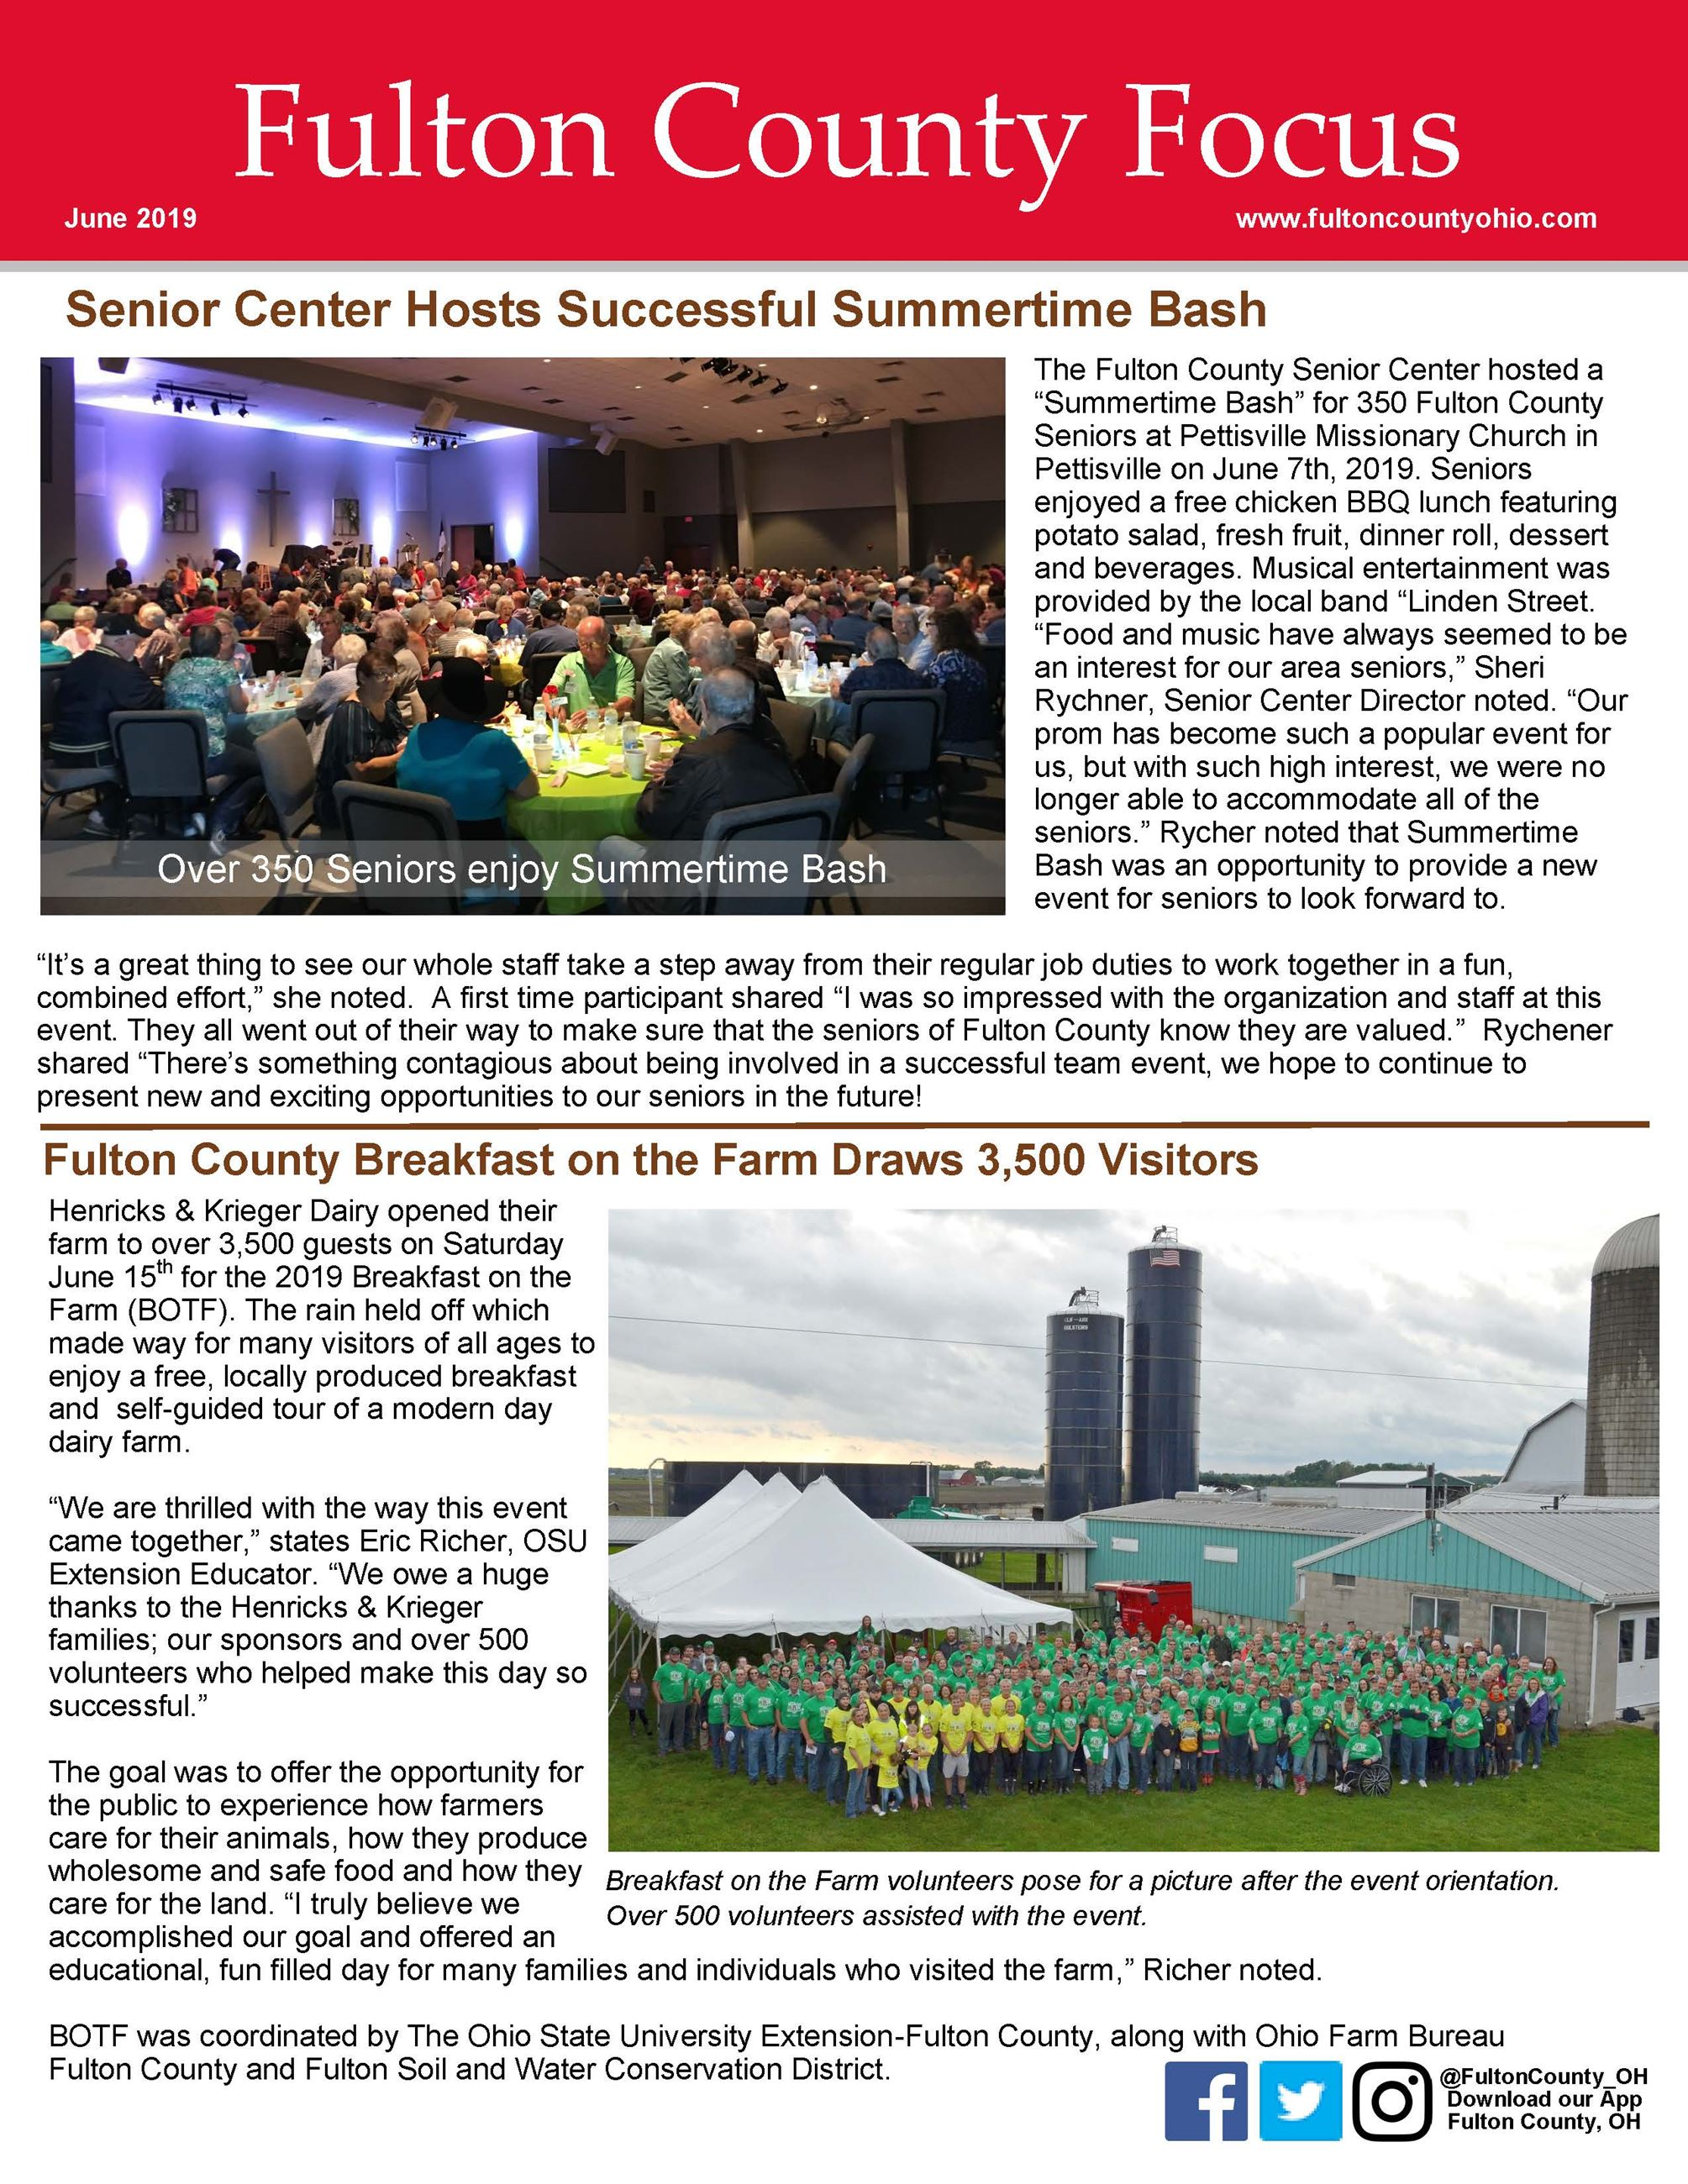 Fulton County Focus June 2019